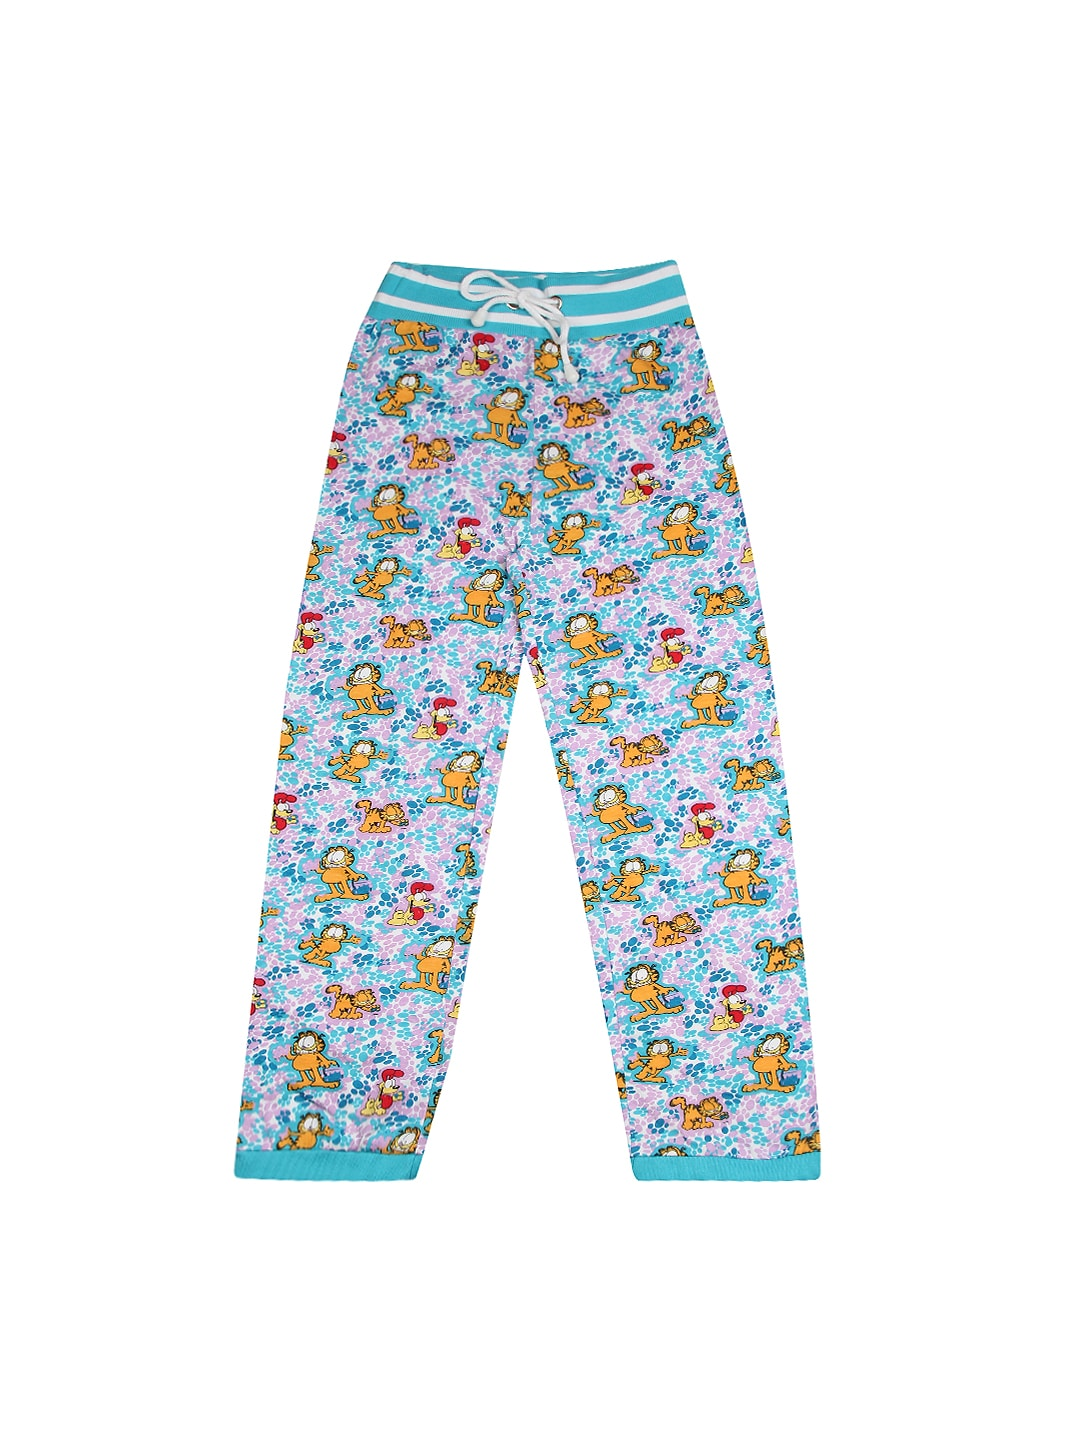 Garfield Girls Blue & Lavender Printed Track Pants